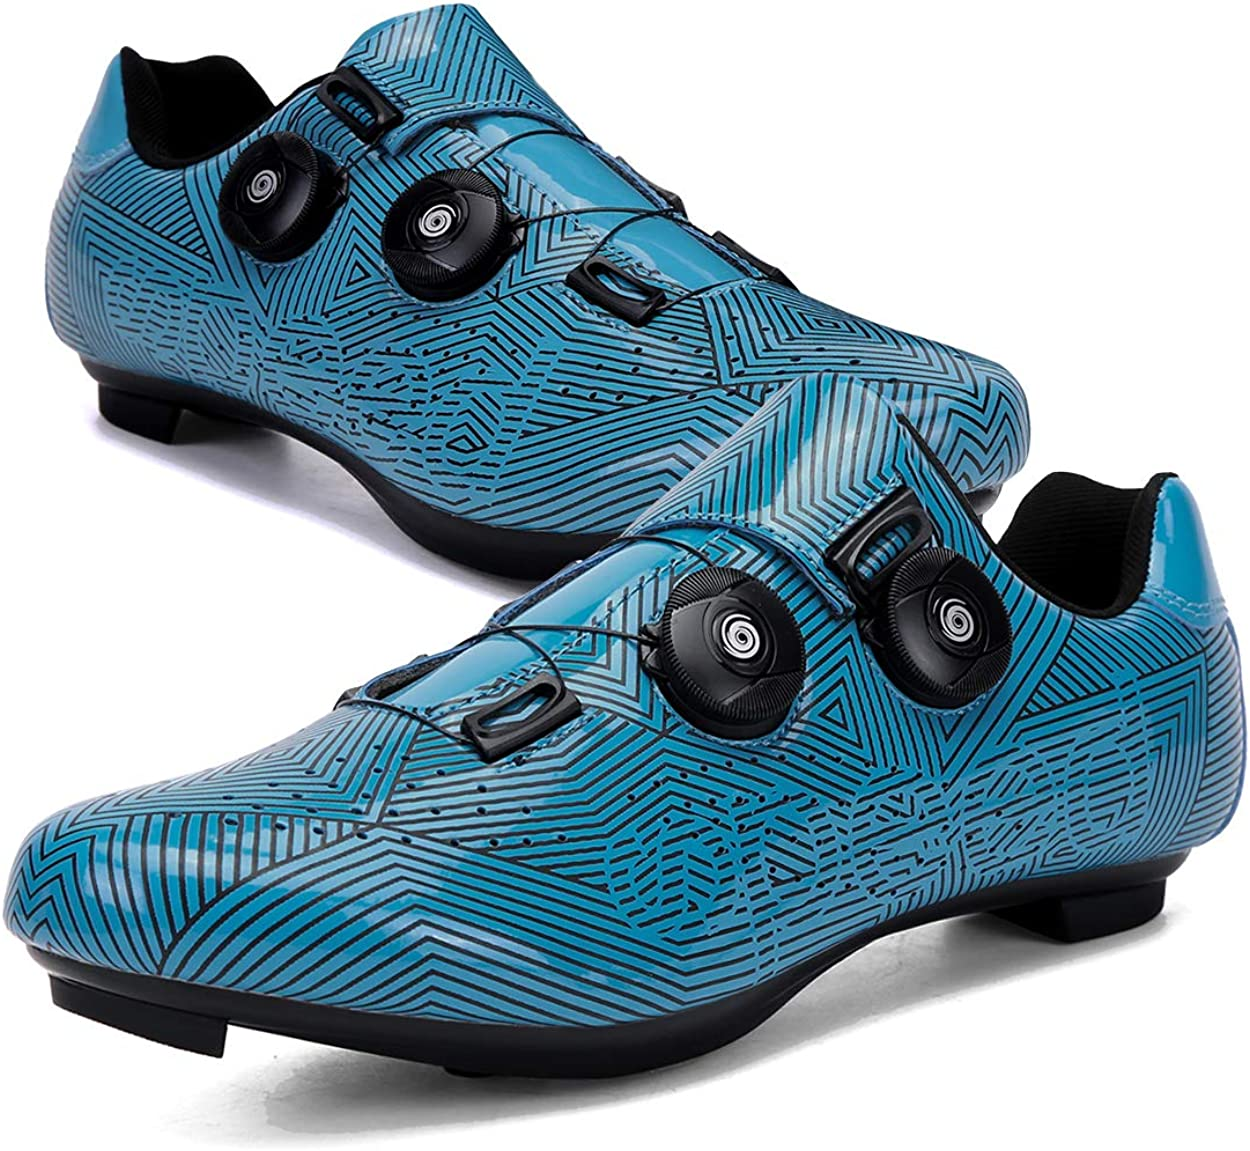 Outlet ☆ Free Shipping Yutoey Mens or Womens 2021 Road Bike Cl Compatible Shoes Tucson Mall Cycling